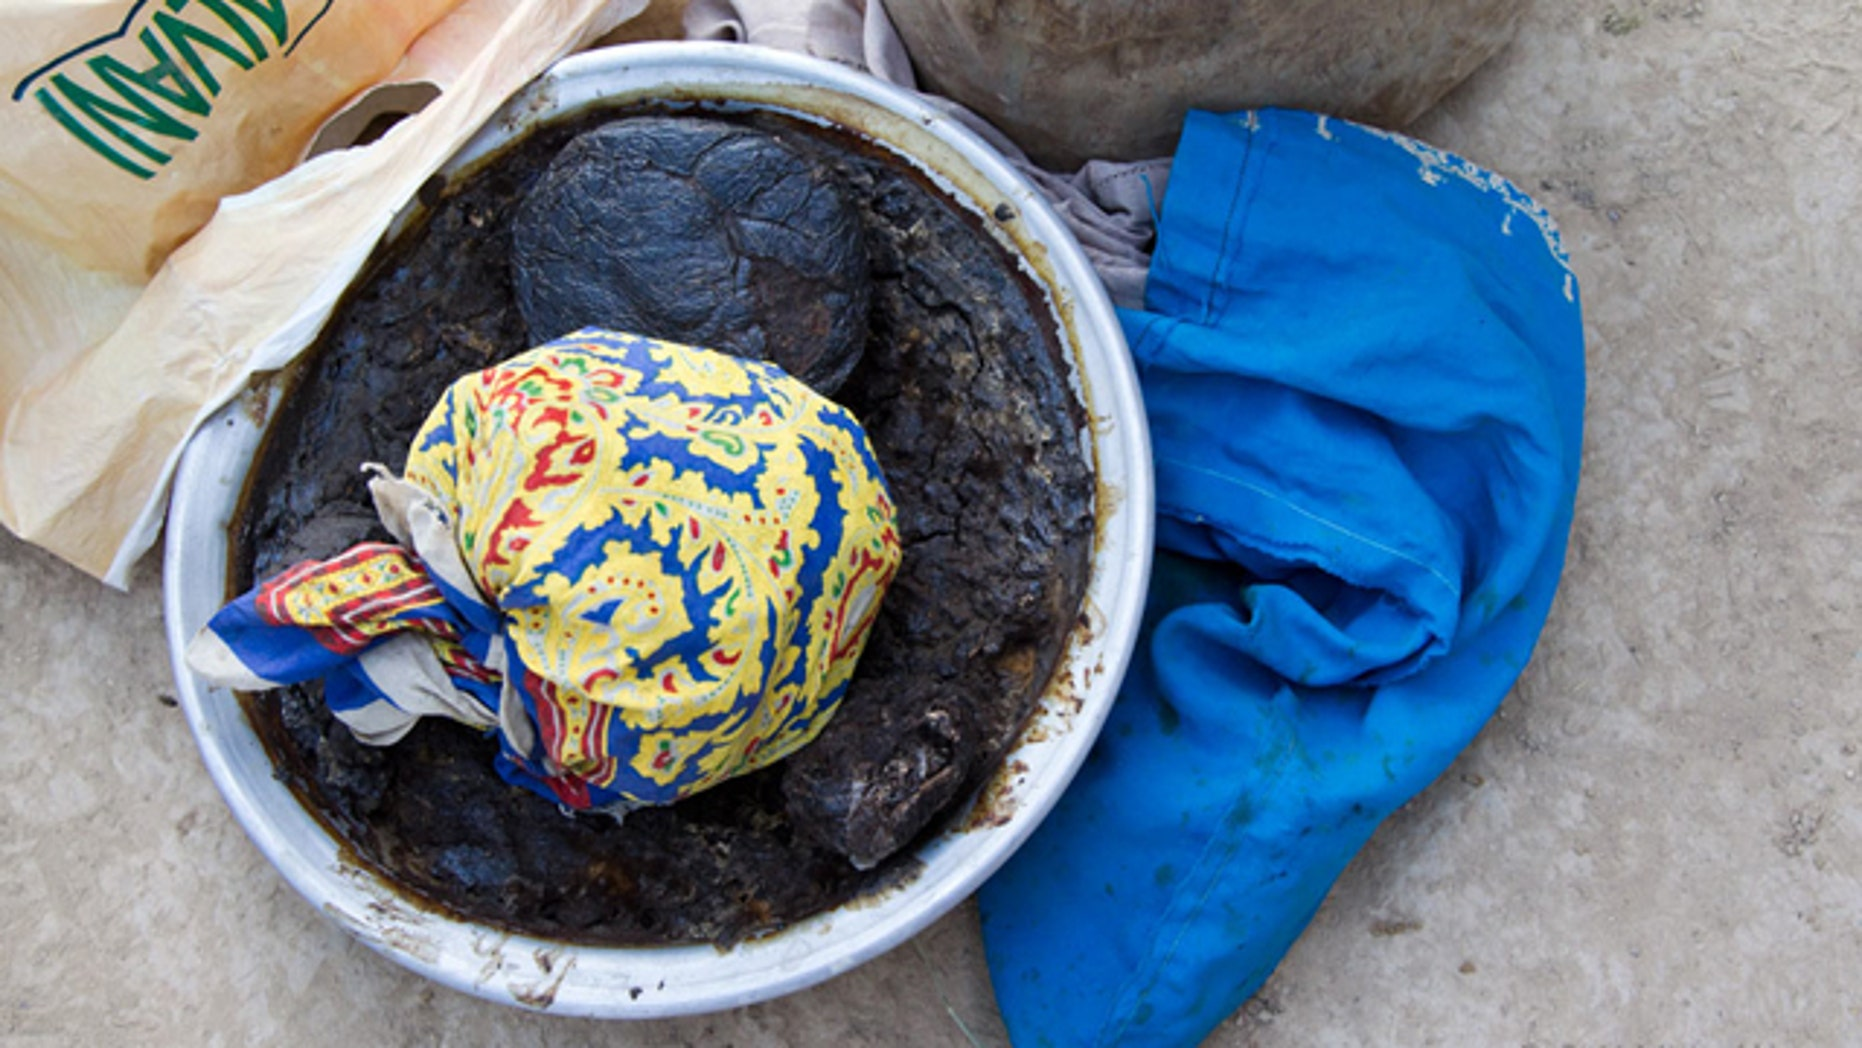 During a mission many weeks ago, a bowl of opium paste like the one seen here was found at a family compound.  The opium has already been harvested and the poppy stalks have been cut down and are dry and hardened.